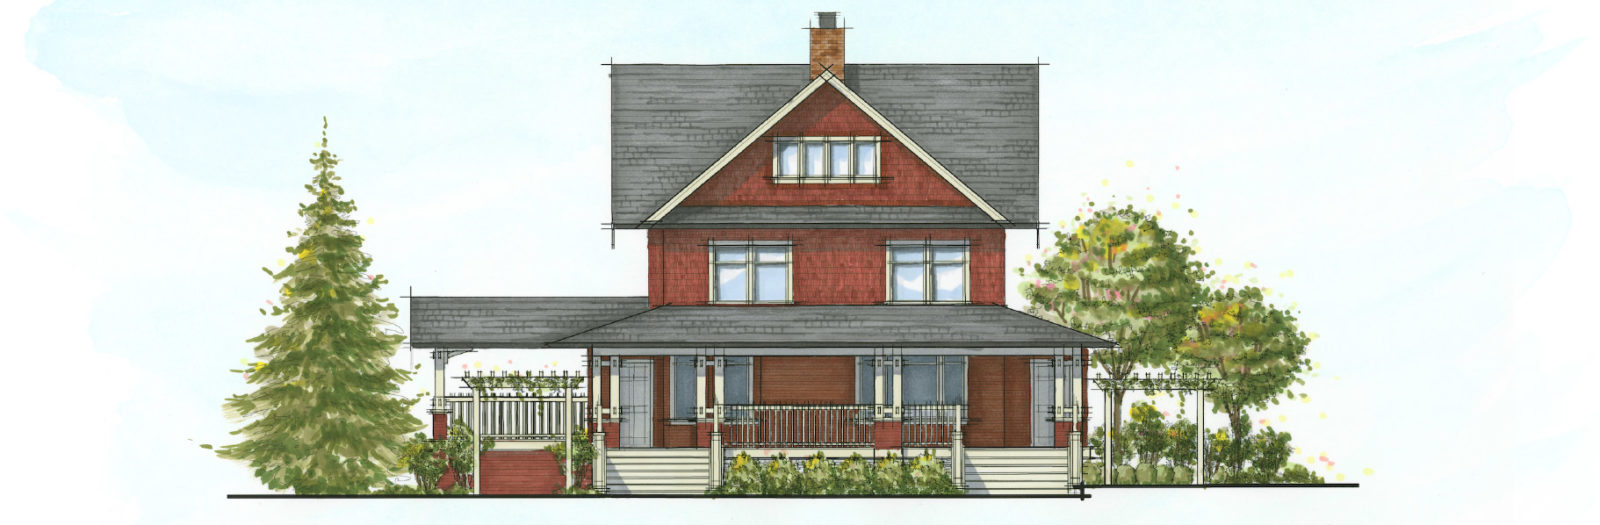 A Collection Of Duplex, Triplex, And Coach Homes, Including The Revitalization Of The Historic Twiss Residence.